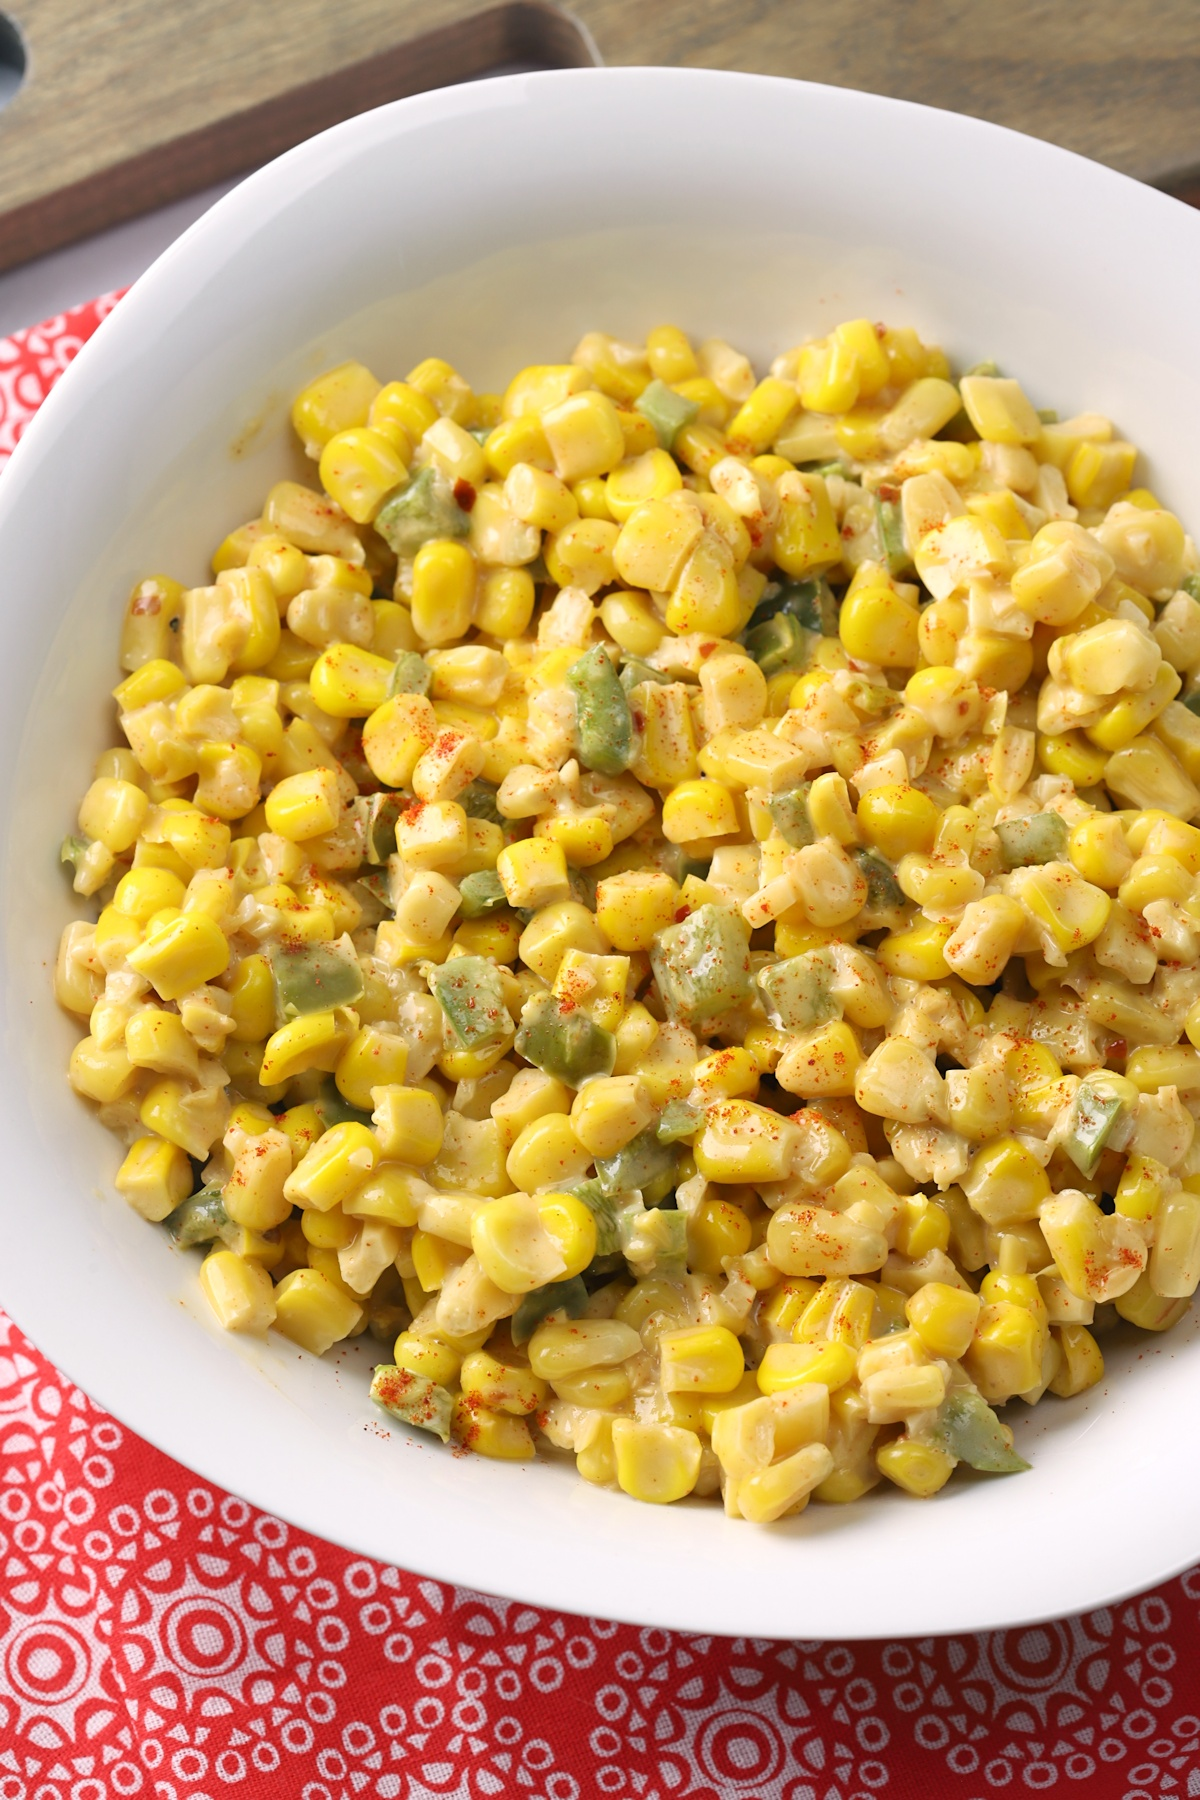 A white bowl filled with corn and jalapenos.